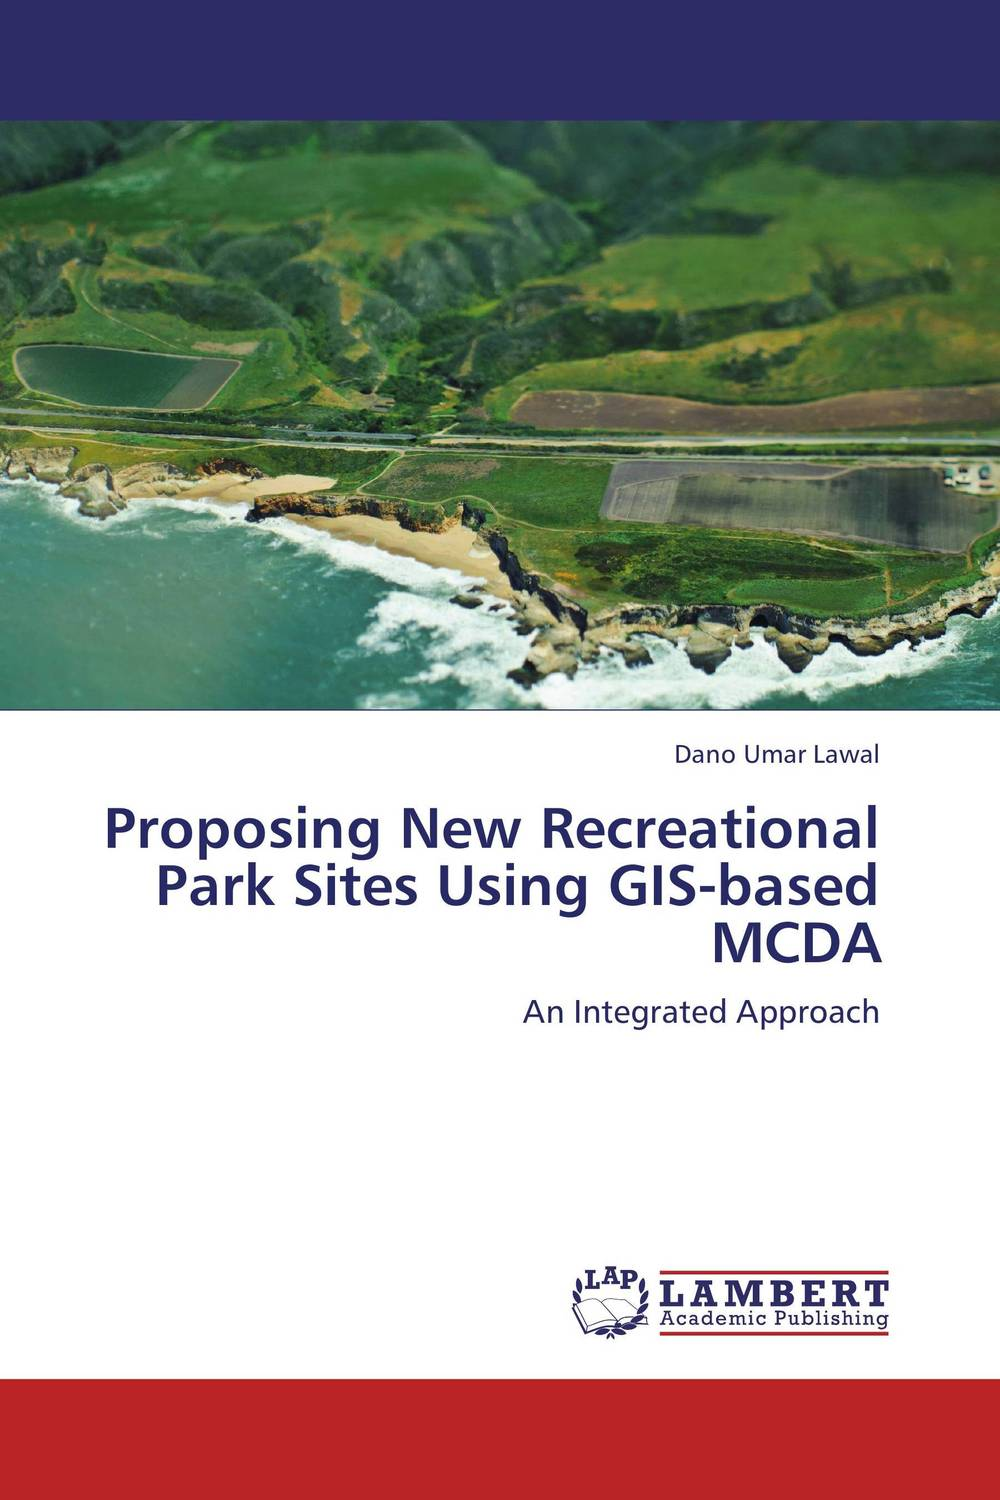 Proposing New Recreational Park Sites Using GIS-based MCDA